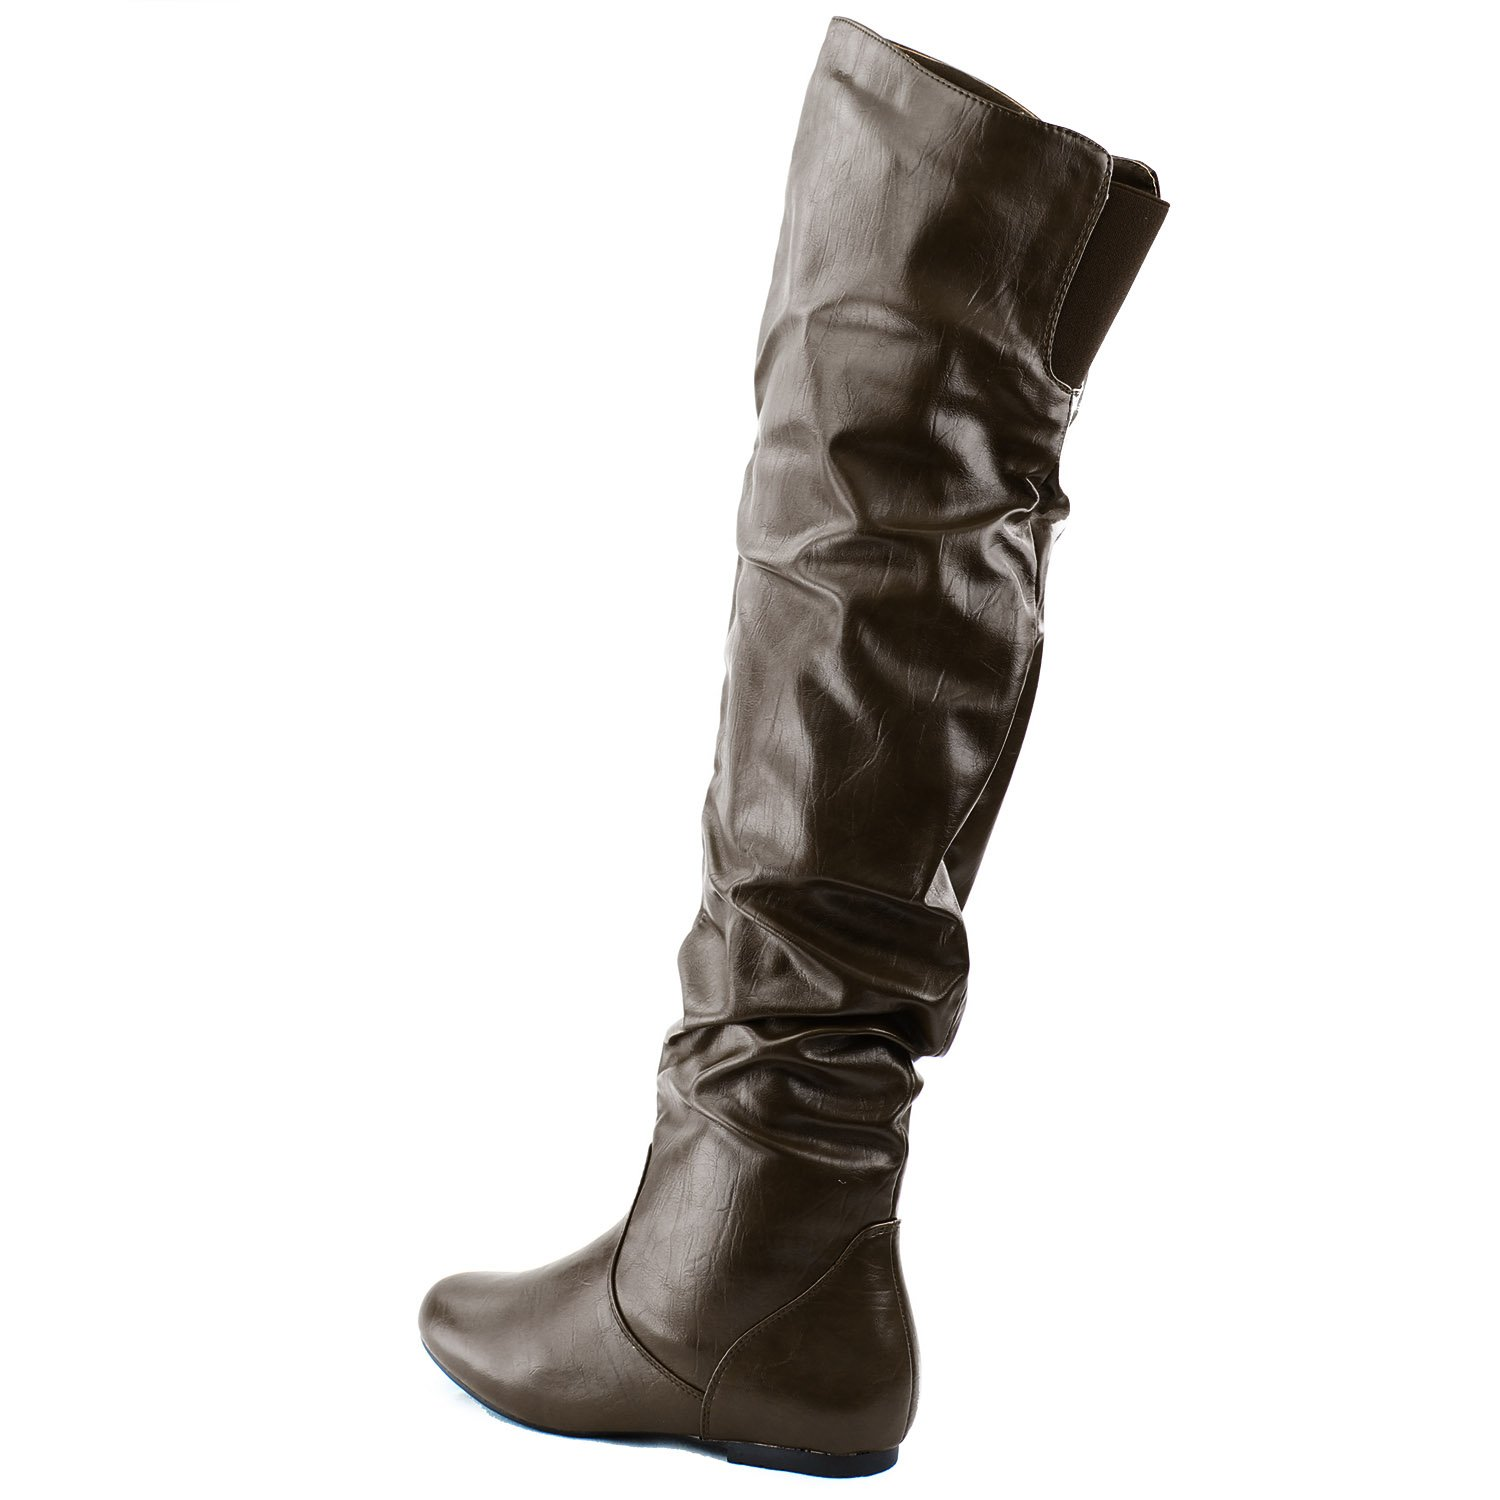 DailyShoes Womens Fashion-Hi Over-the-Knee Thigh High Flat Slouchly Shaft Low Heel Boots